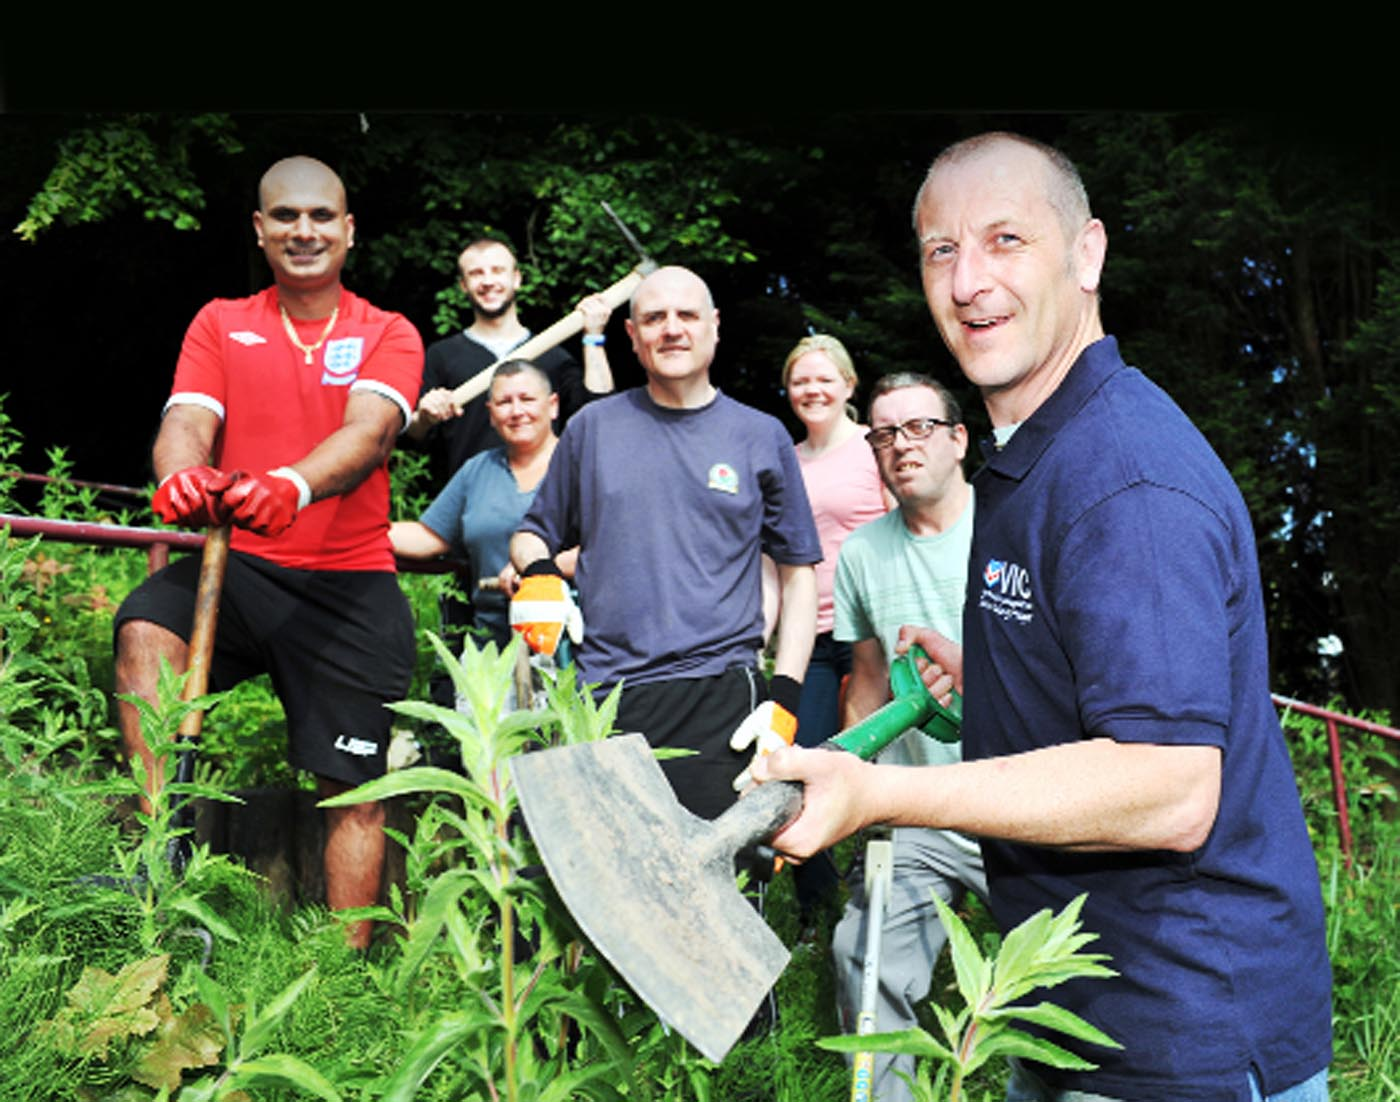 Residents of Beckett Street with members of Darwen Outreach, including war veterans, begin clearing an overgrown area